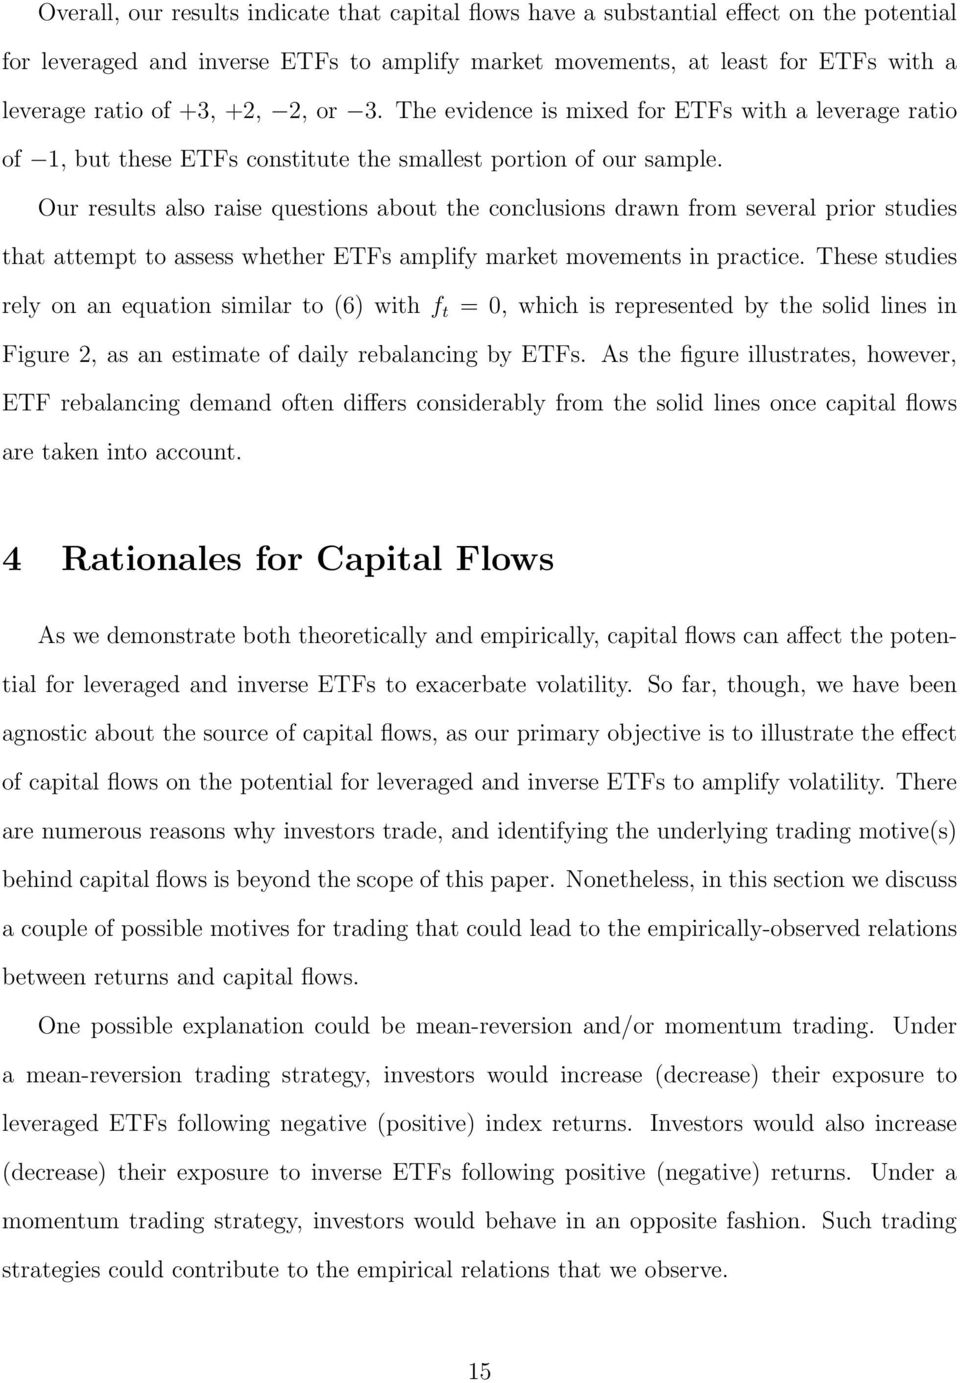 Our results also raise questions about the conclusions drawn from several prior studies that attempt to assess whether ETFs amplify market movements in practice.